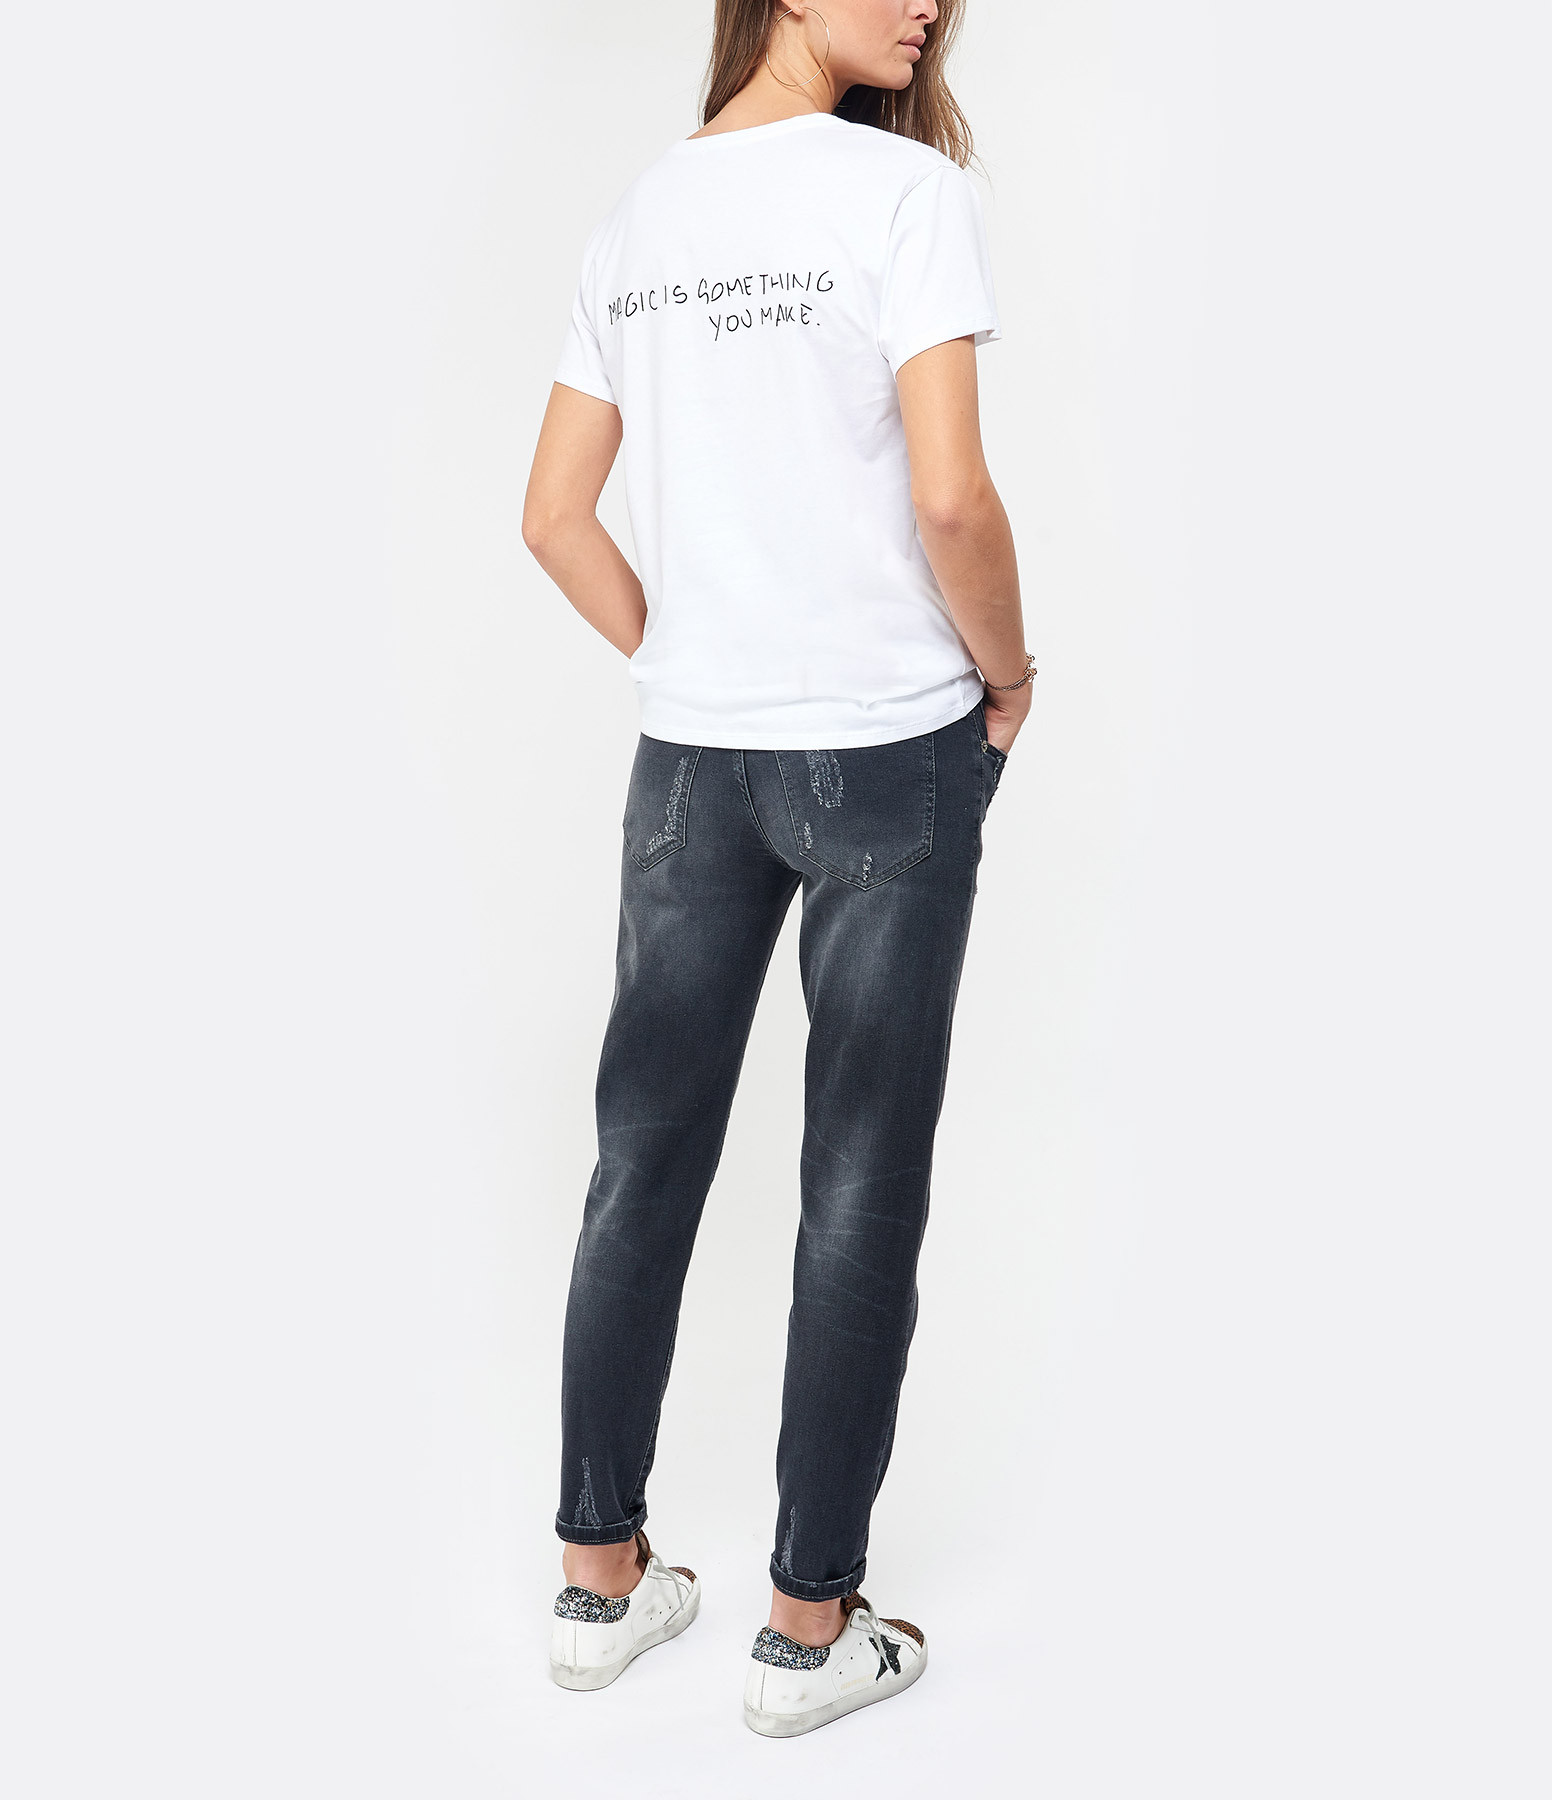 JEANNE VOULAND - Tee-shirt Baria Broderie Magic Is Blanc